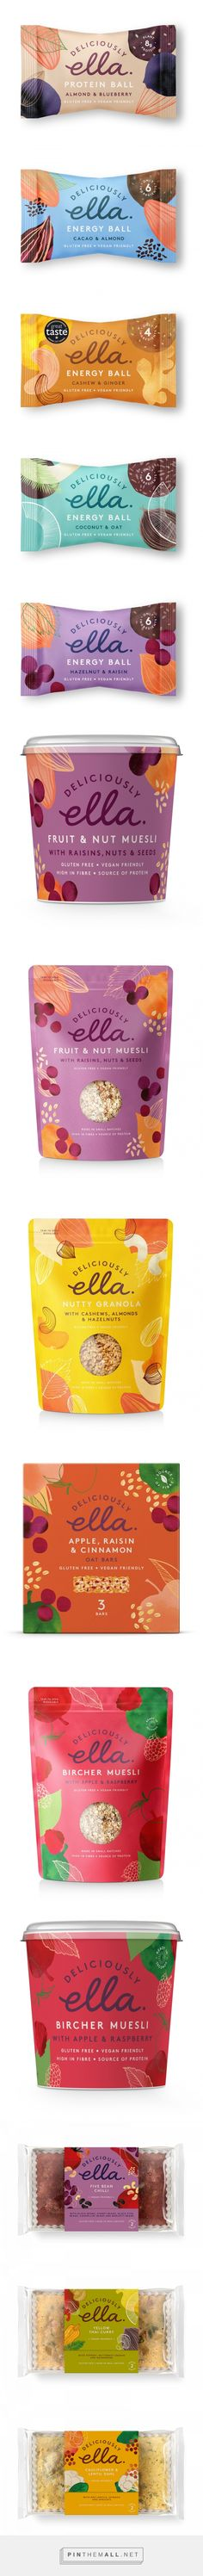 Deliciously Ella on Packaging of the World - Creative Package Design Gallery - created on Design Poster, Graphic Design Branding, Label Design, Identity Design, Brochure Design, Package Design, Visual Identity, Food Branding, Food Packaging Design